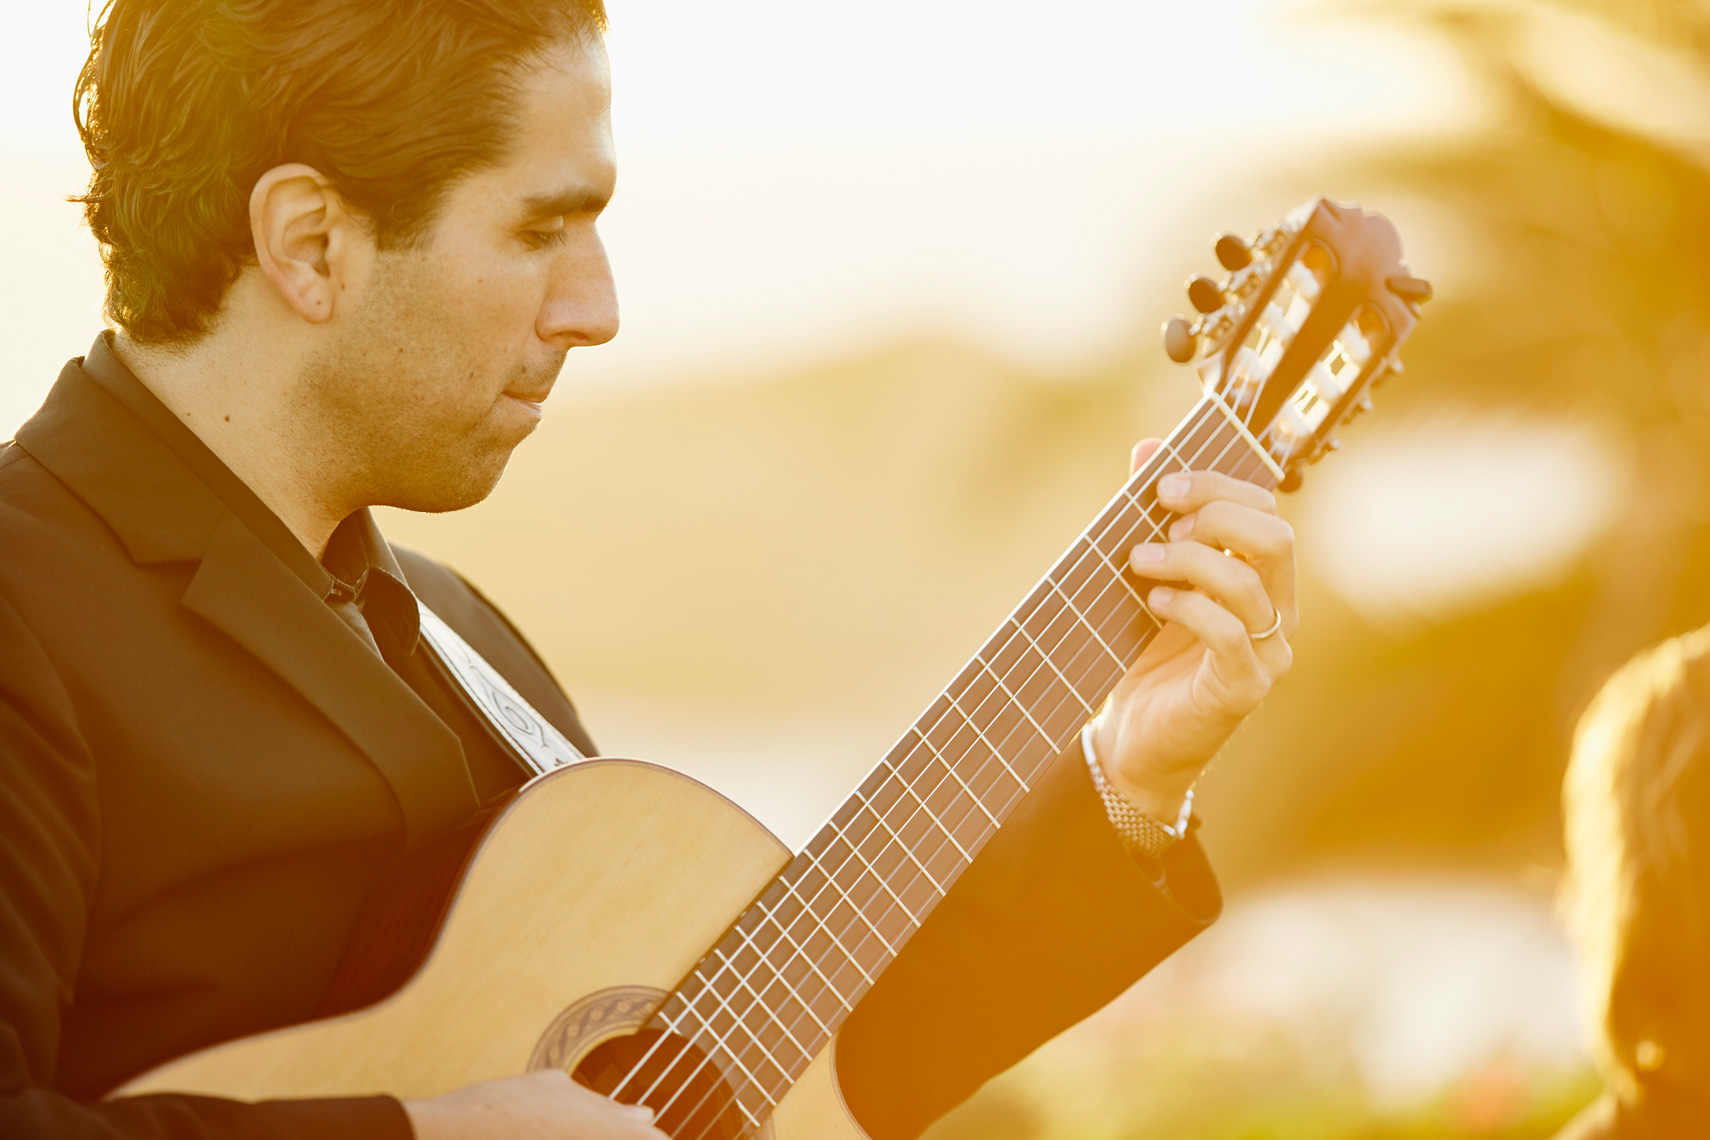 Musician plays guitar at sunset on Studio lawn at Montage Resort, Laguna Beach